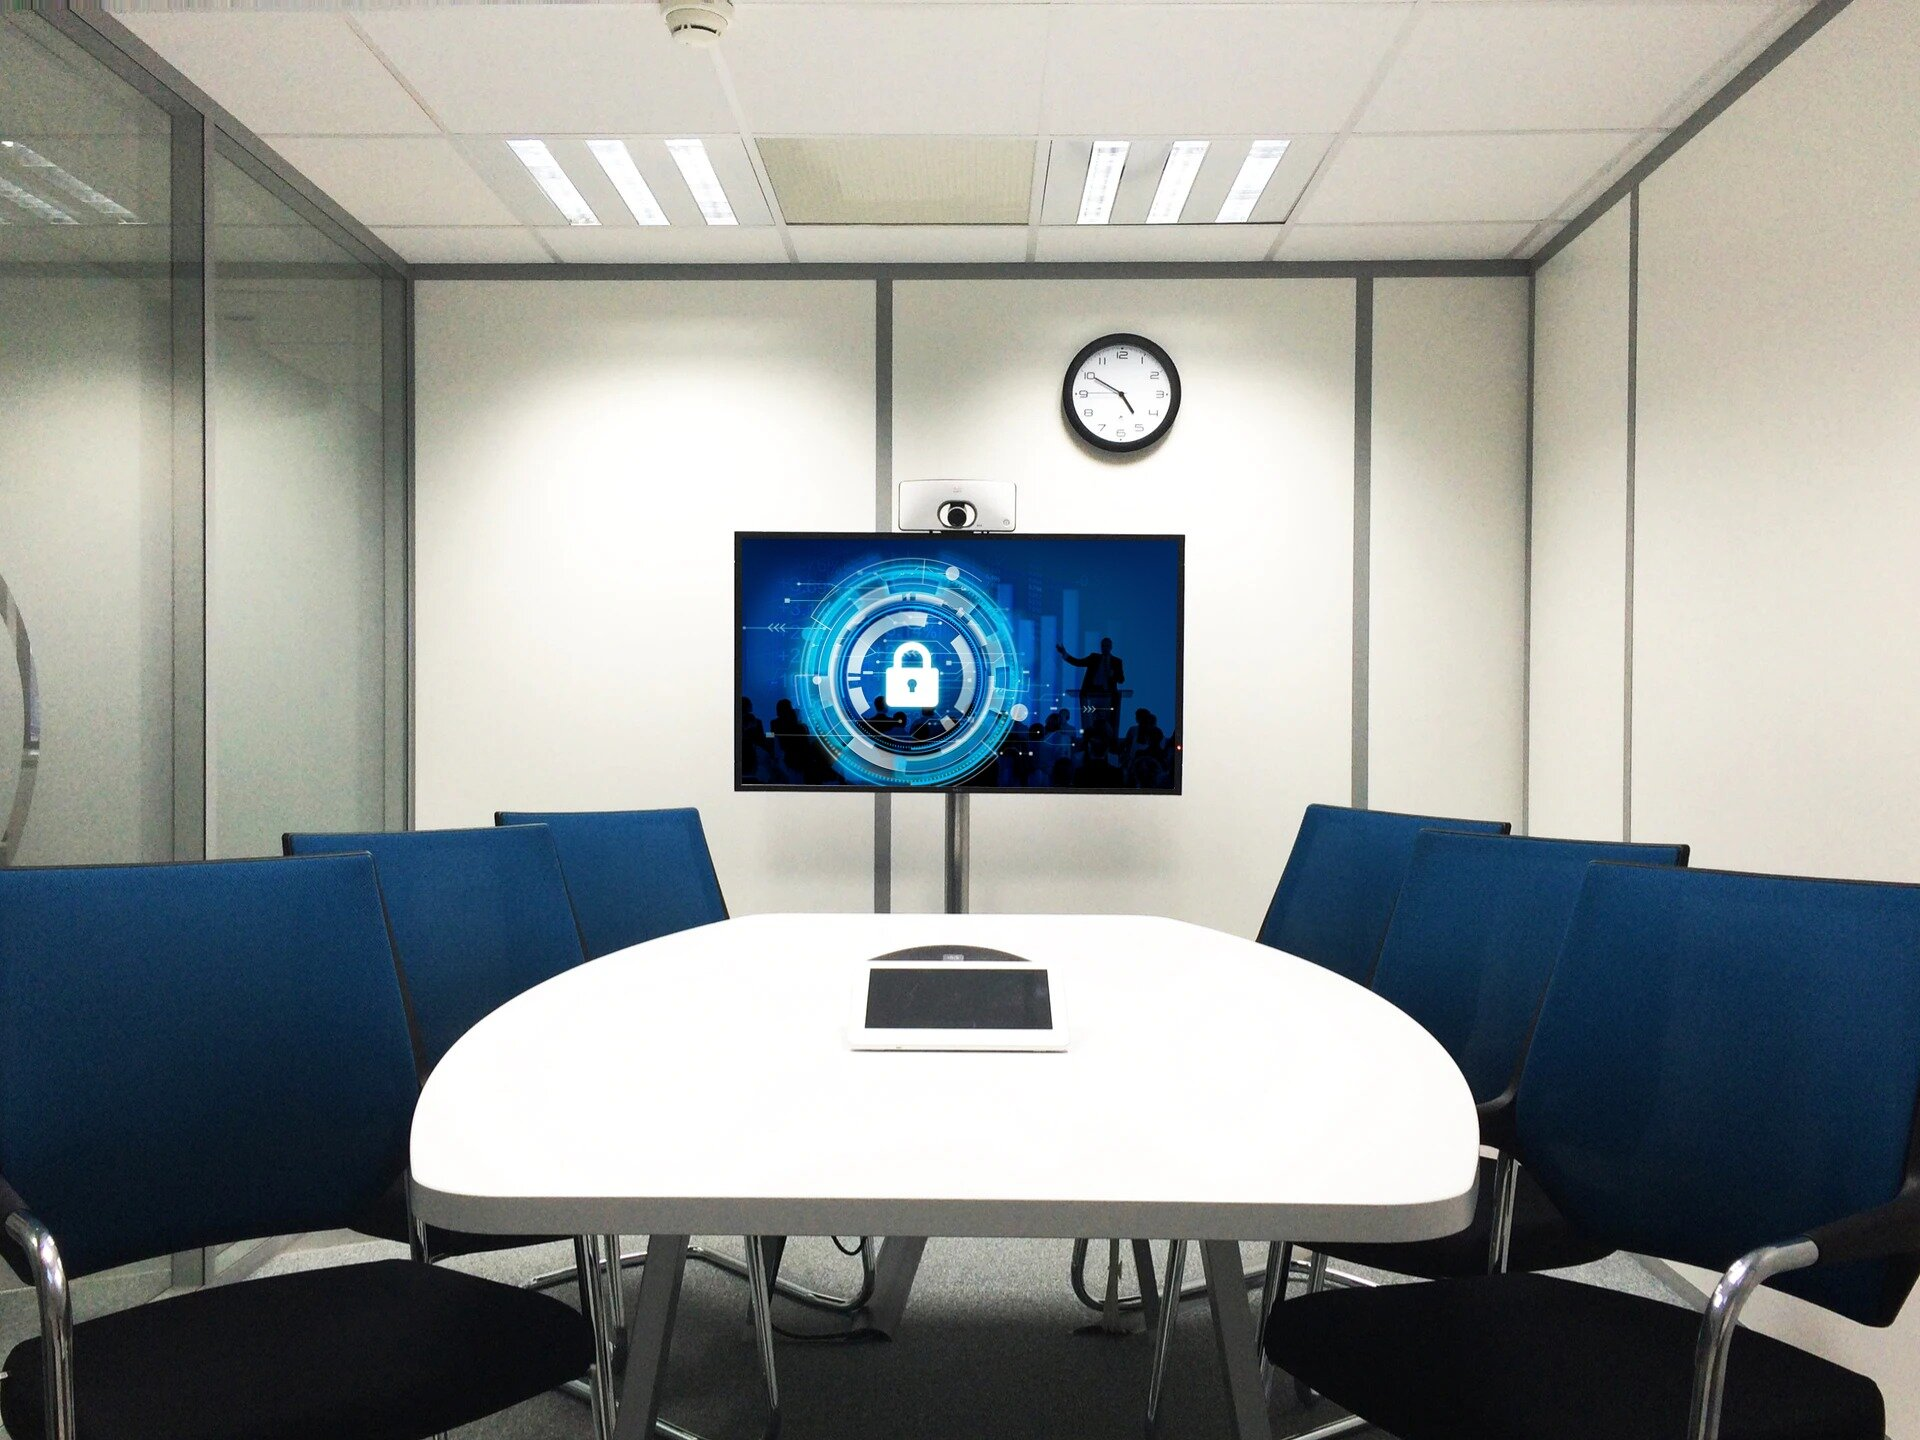 Security is no longer an option Security Awareness Training - Cybercriminals target end users. Ongoing cybersecurity education and training for end users is a must for businesses to stay secure. Security awareness training is an education process that teaches employees about cybersecurity.